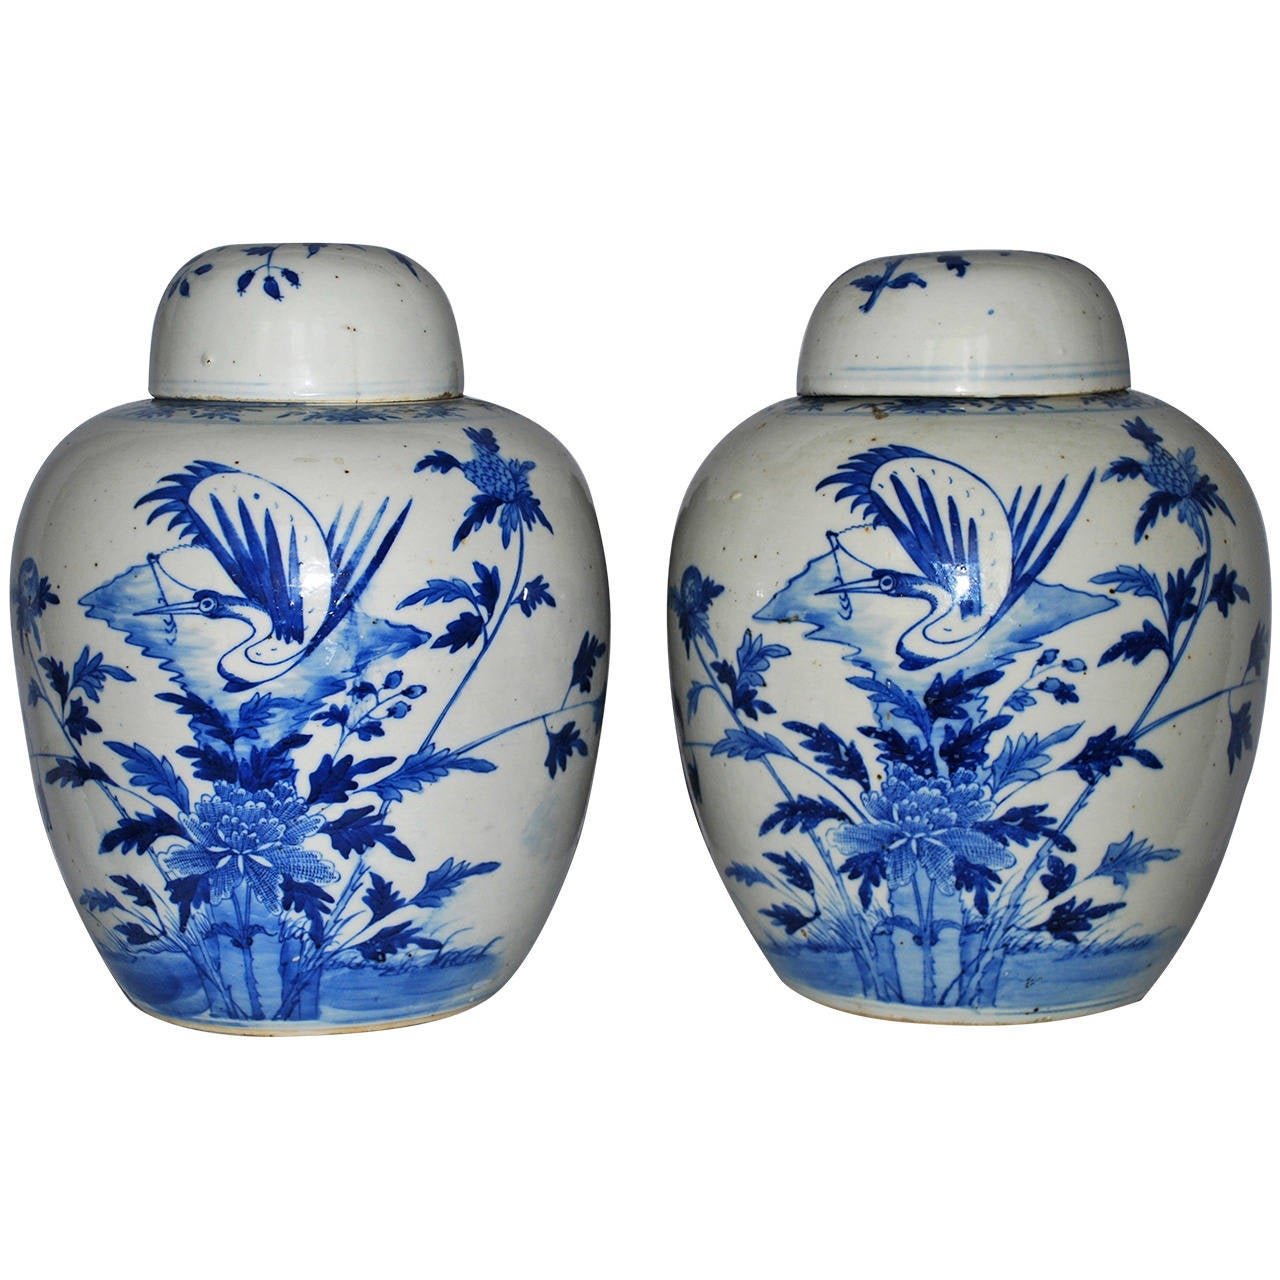 Pair of Vintage Blue and White Ginger Jars